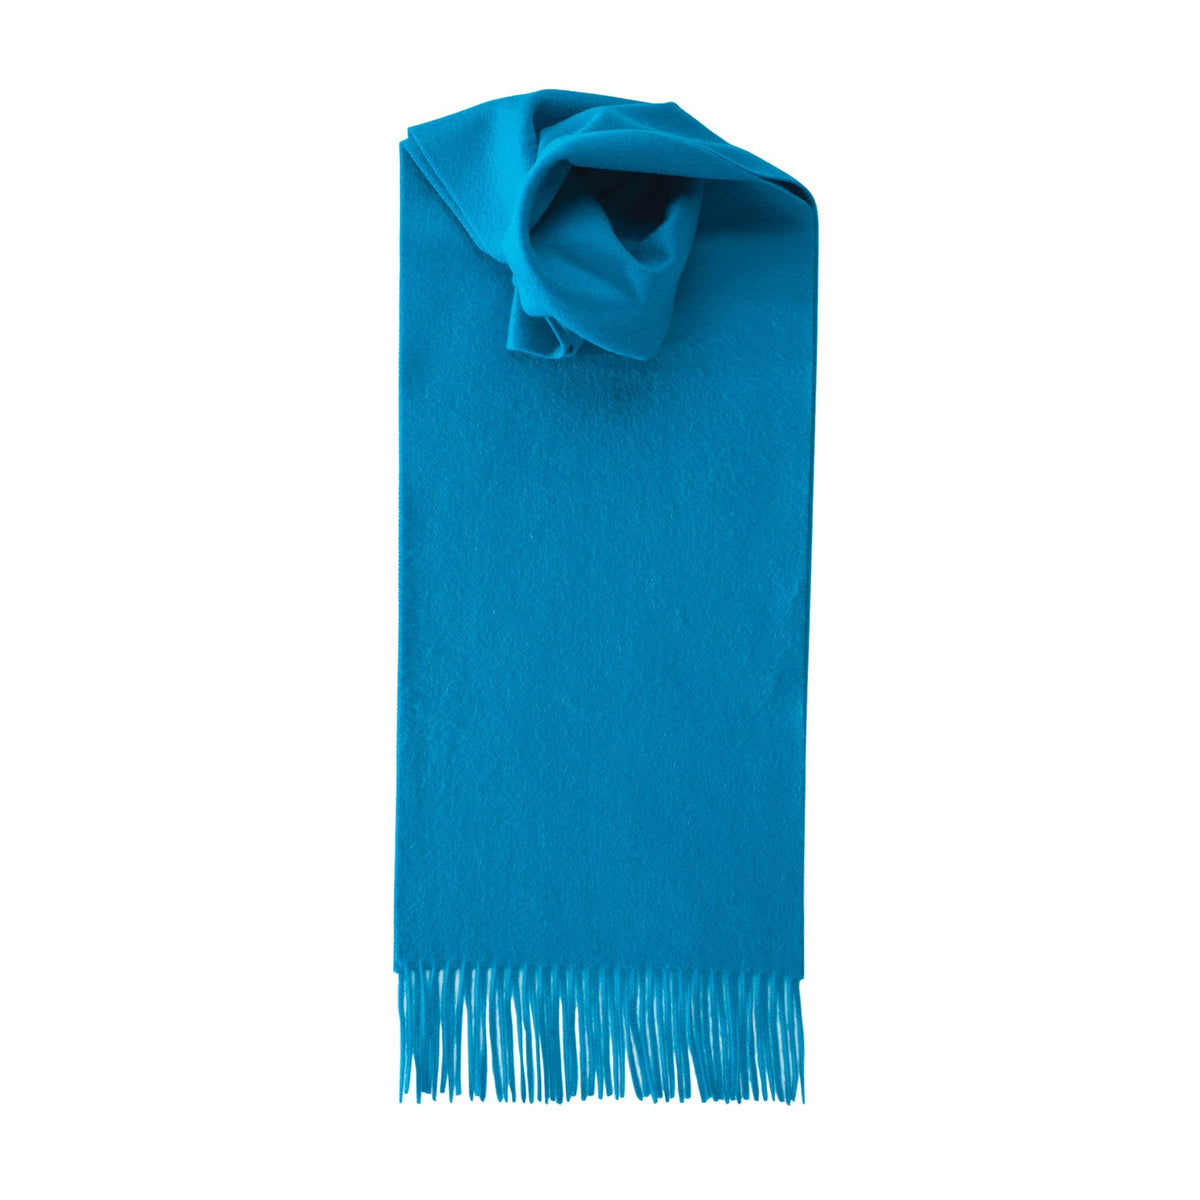 Johnsons of Elgin | Kingfisher Blue Cashmere Scarf | buy at The Cashmere Choice | London